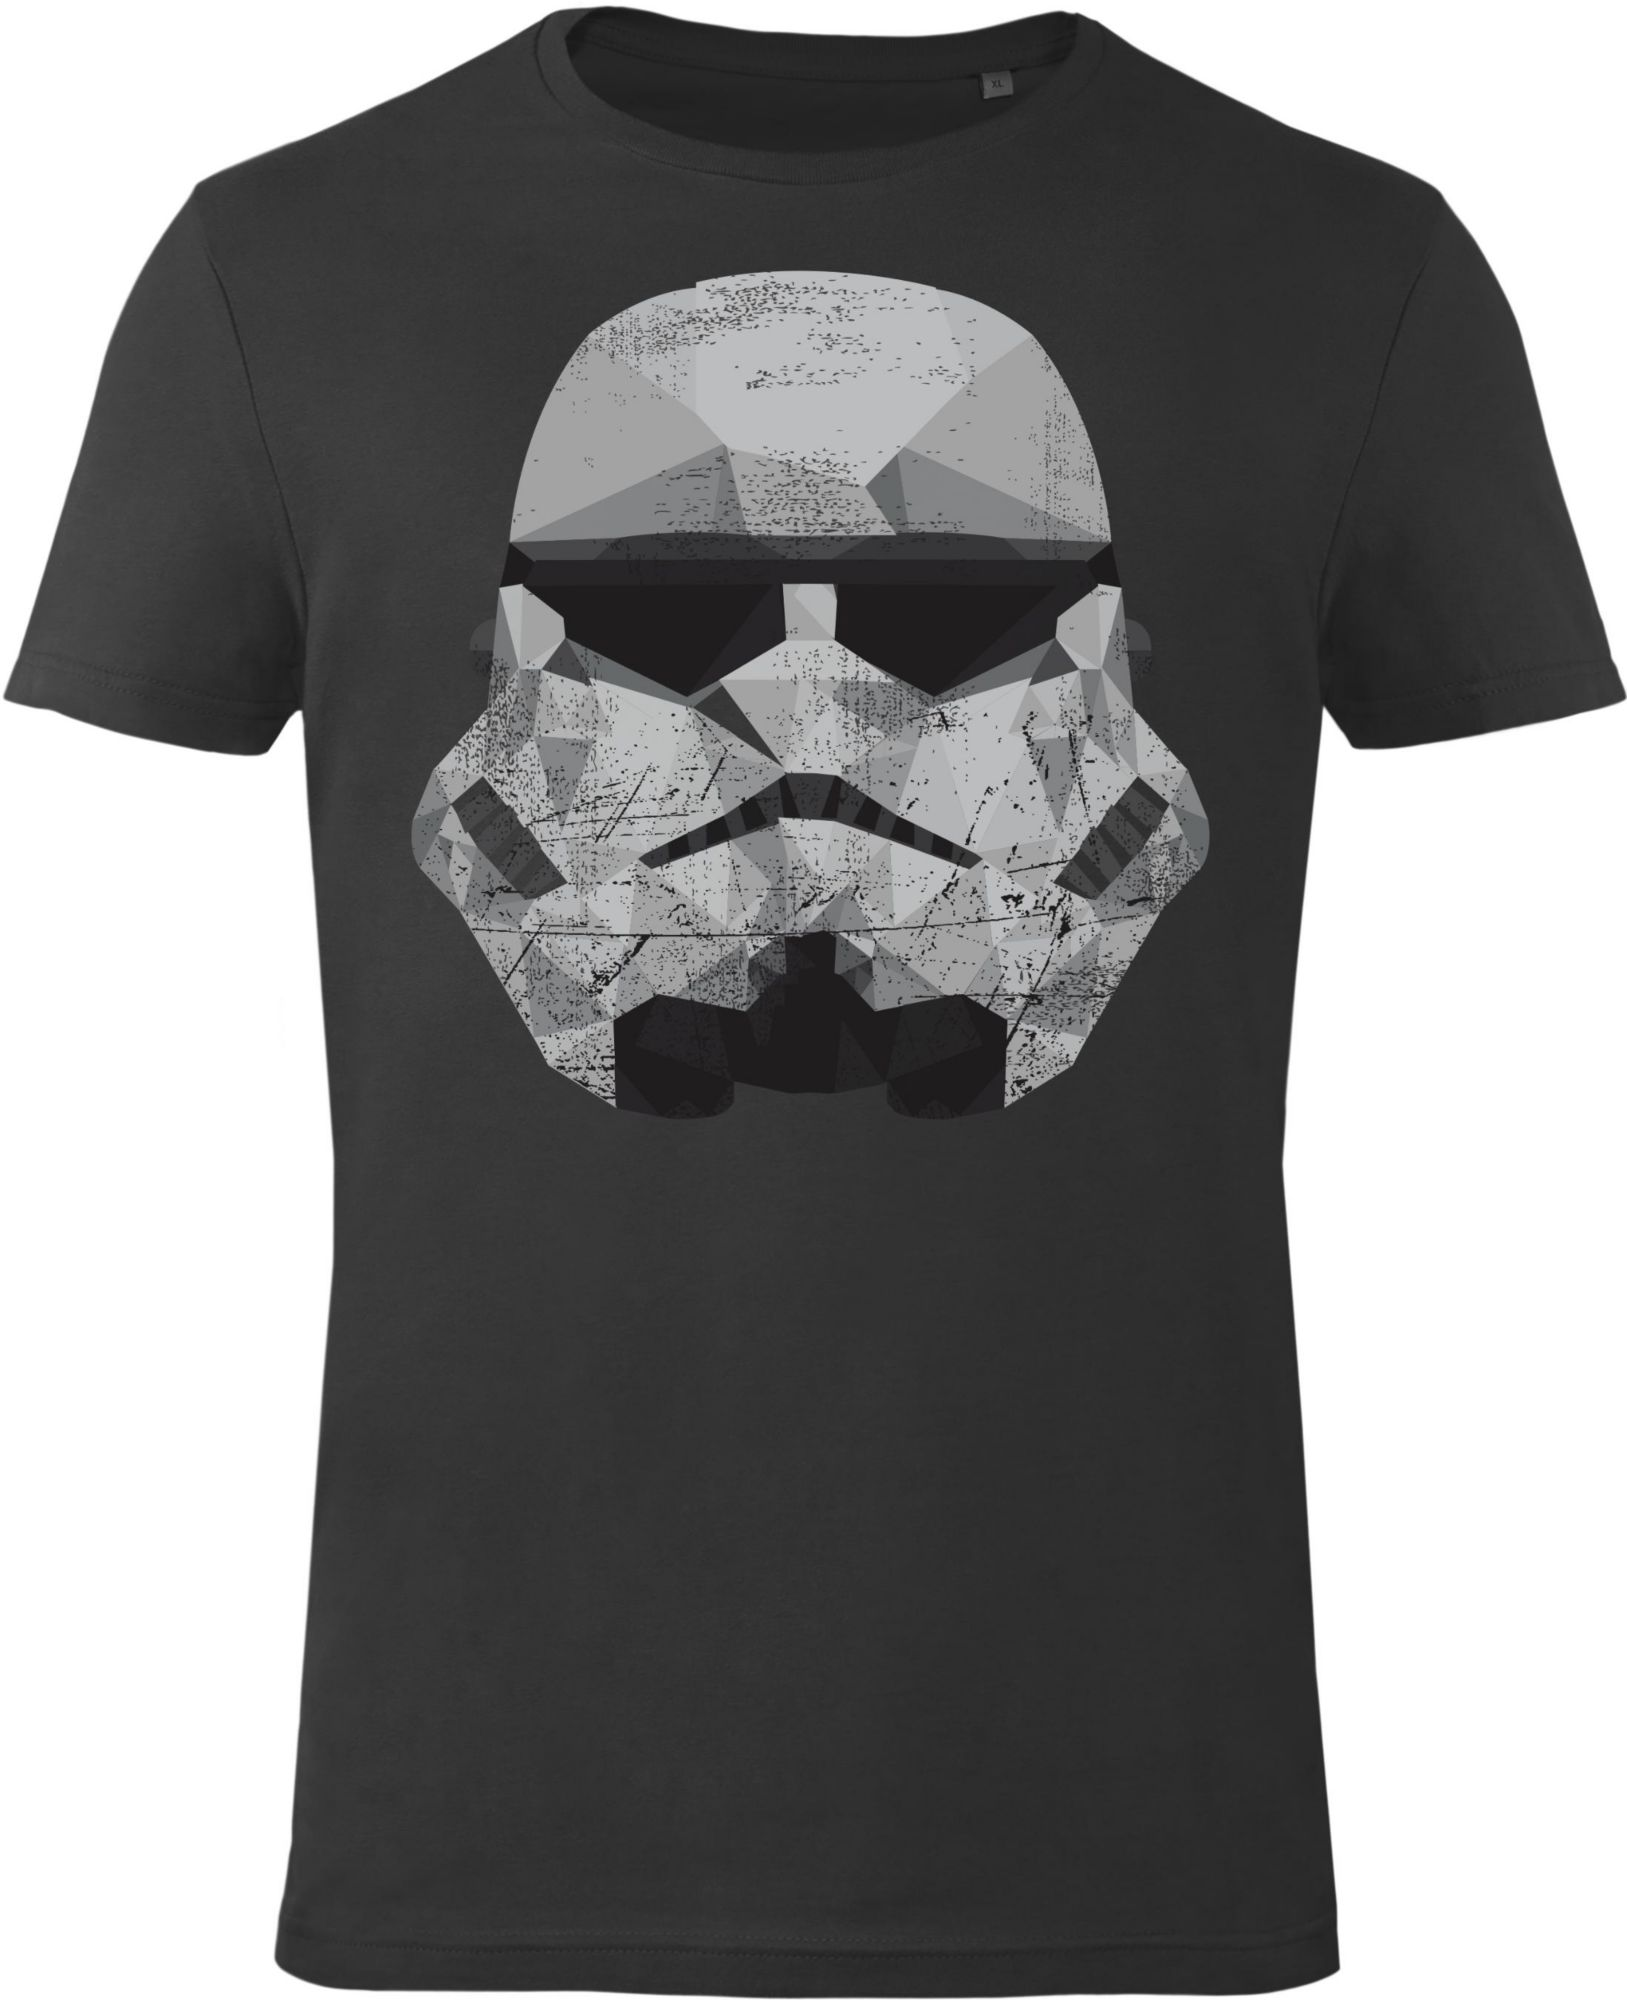 GOZOO Gozoo T-Shirt »Star Wars - Imperial Stormtrooper - Graphic«